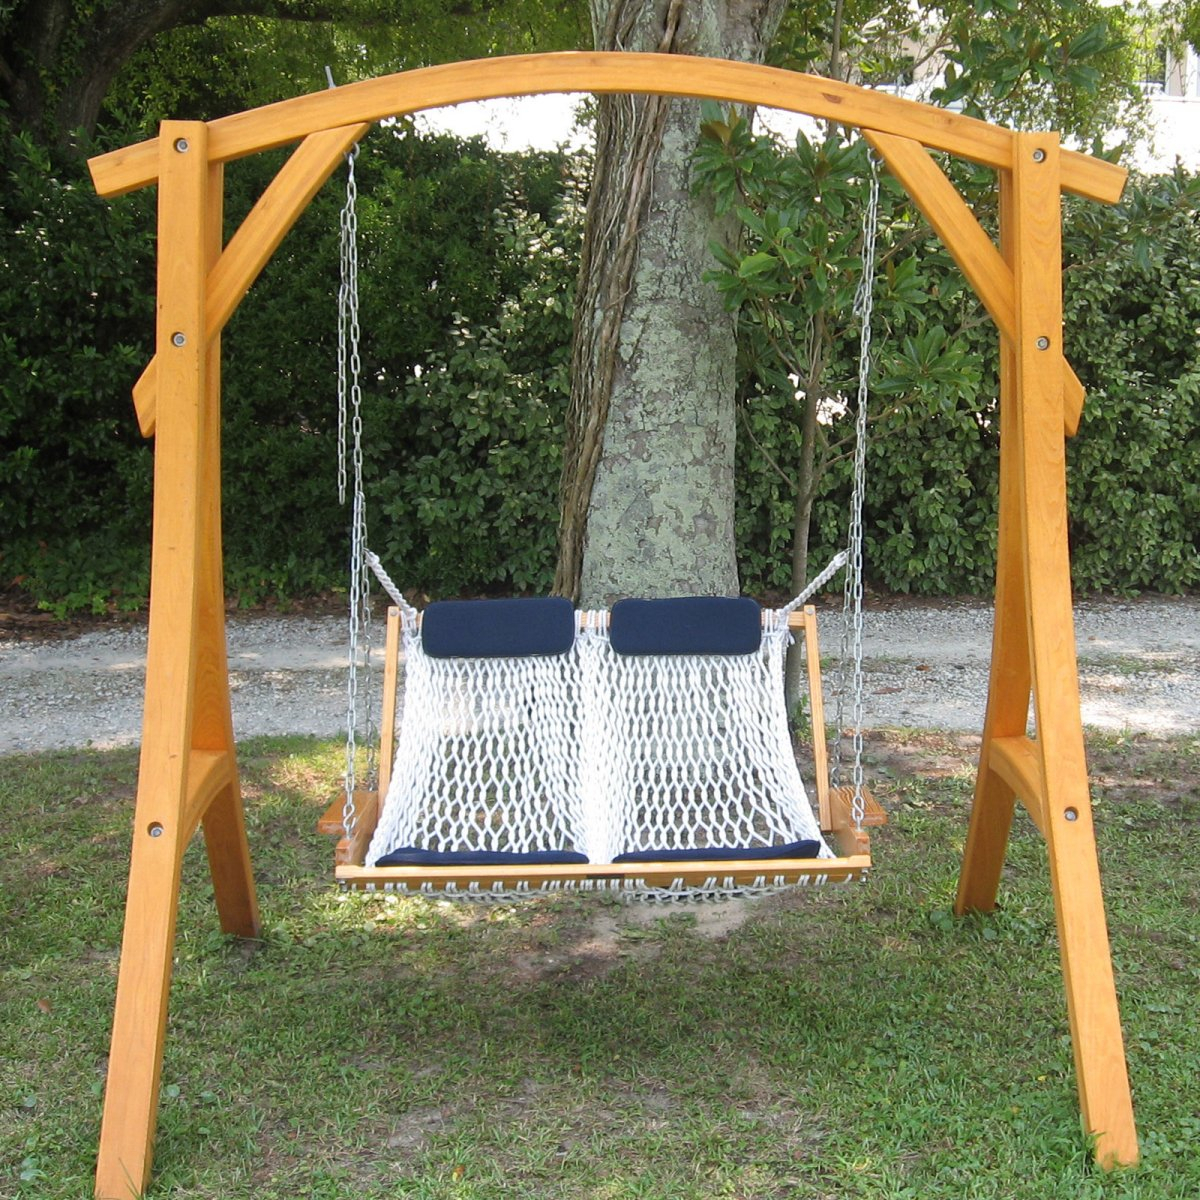 Porch Hammock Swing Ideas | Myhappyhub Chair Design Inside Patio Loveseat Canopy Hammock Porch Swings With Stand (Image 23 of 25)